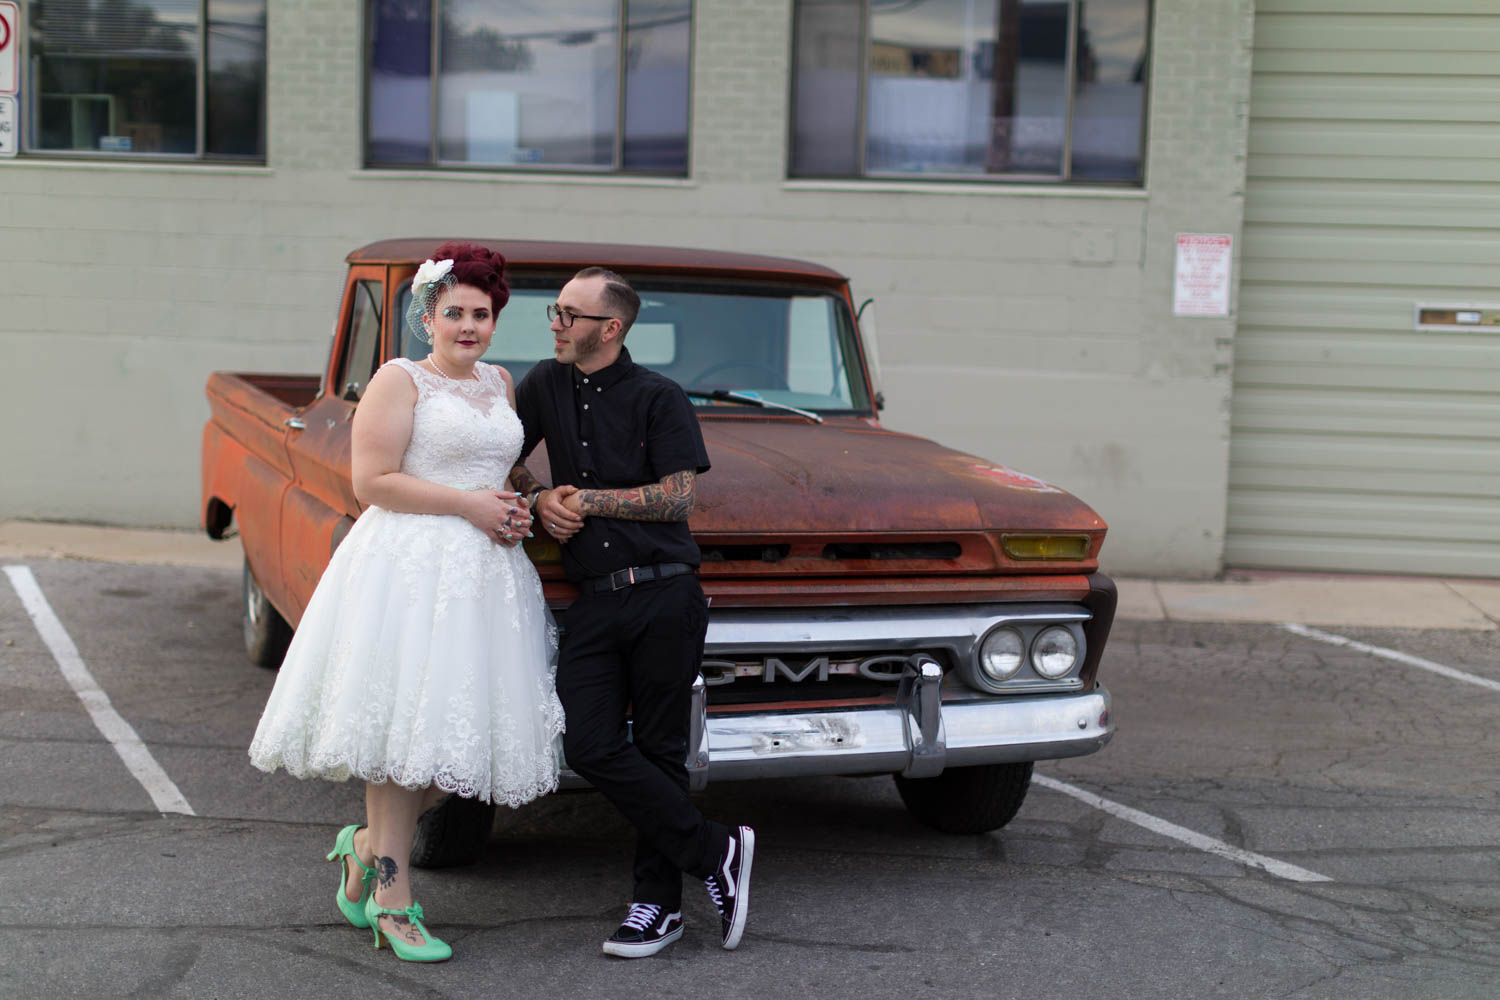 Wedding photos by a classic GMC truck